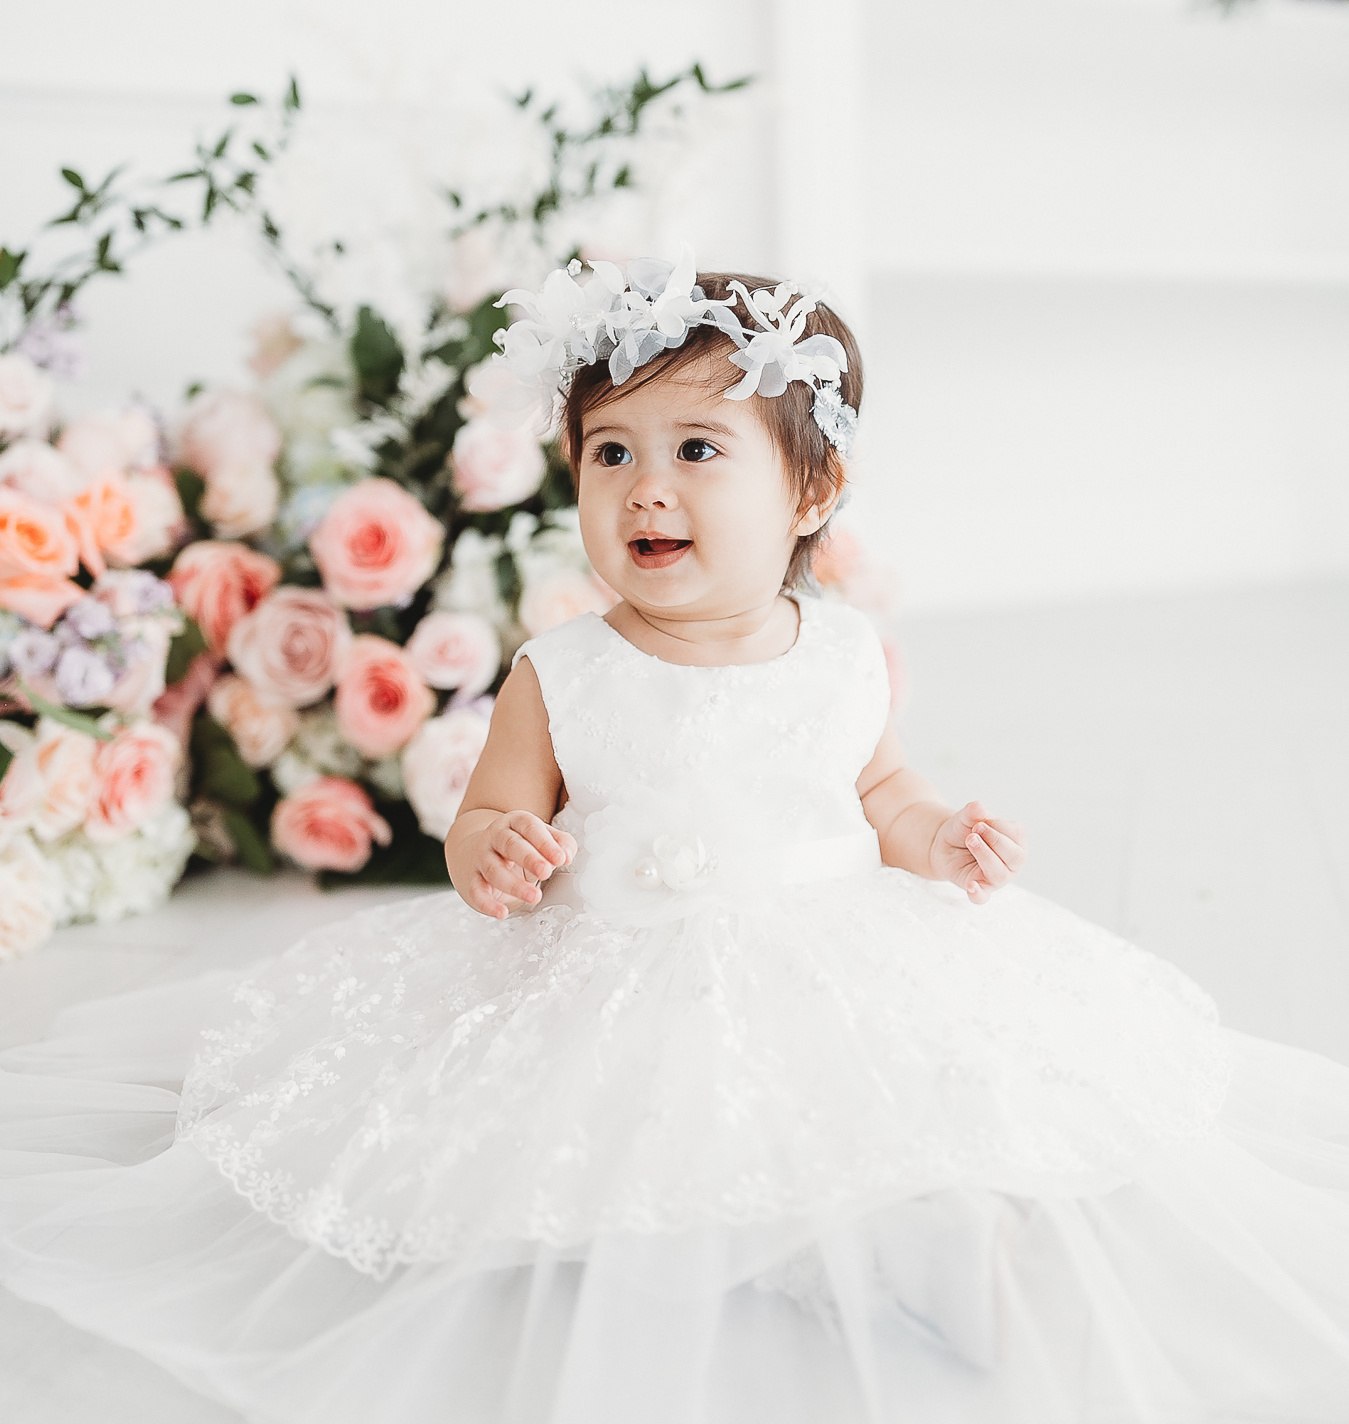 Tips For Finding The Perfect Flower Girl Dress For A Summer Wedding